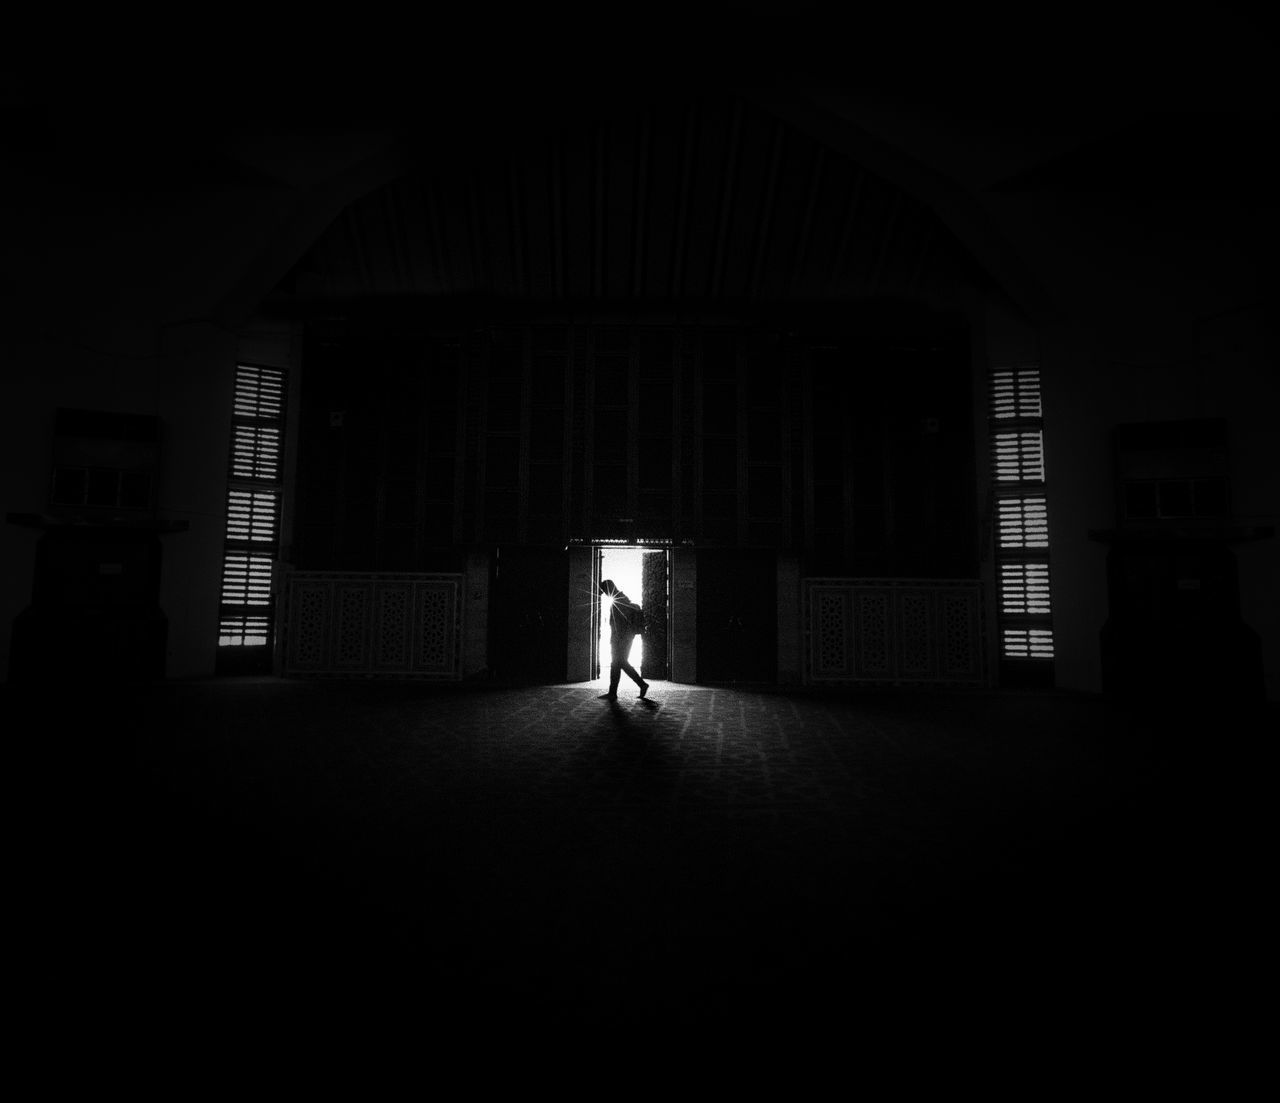 one person, architecture, built structure, indoors, real people, full length, dark, building, rear view, walking, direction, lifestyles, the way forward, day, domestic room, men, copy space, arcade, silhouette, light at the end of the tunnel, ceiling